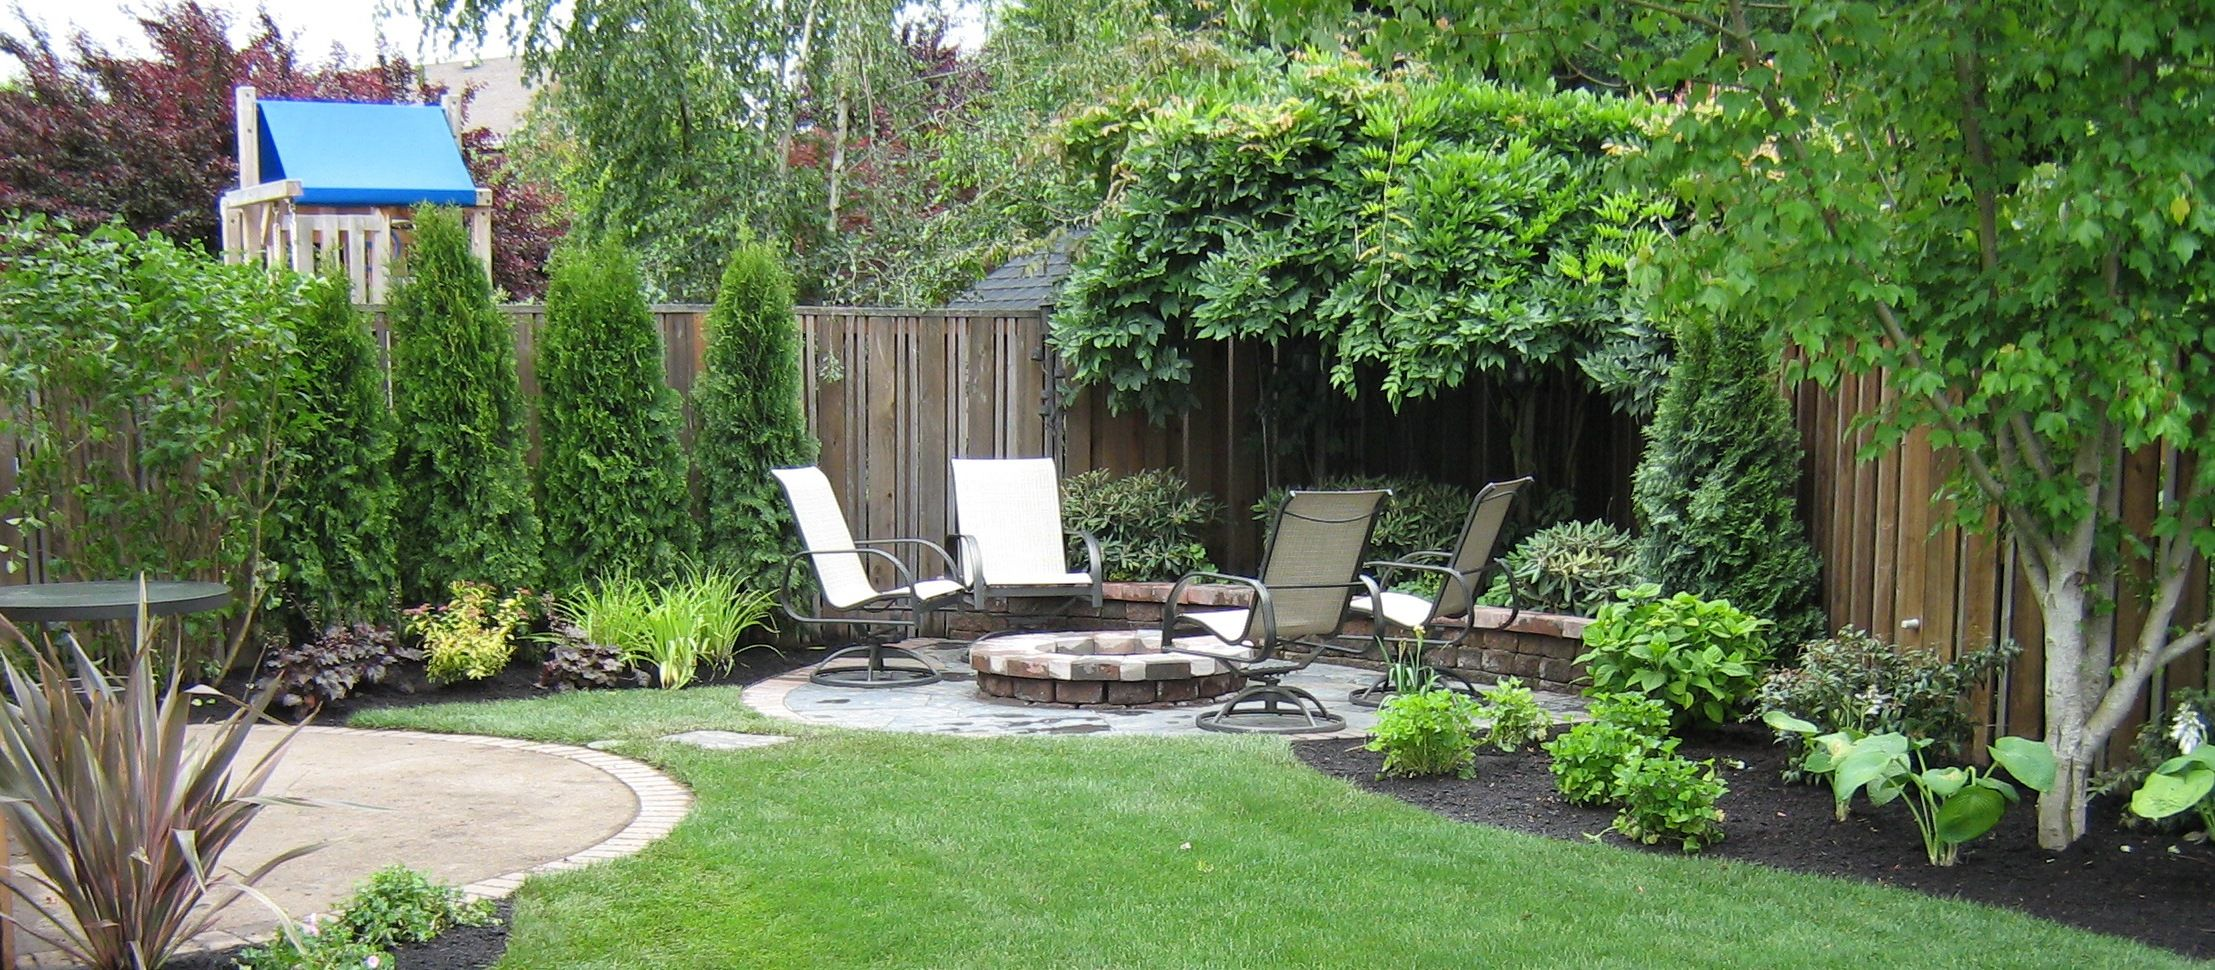 small backyard landscaping ideas photos garden design ideas for exclusive backyard 119. Black Bedroom Furniture Sets. Home Design Ideas